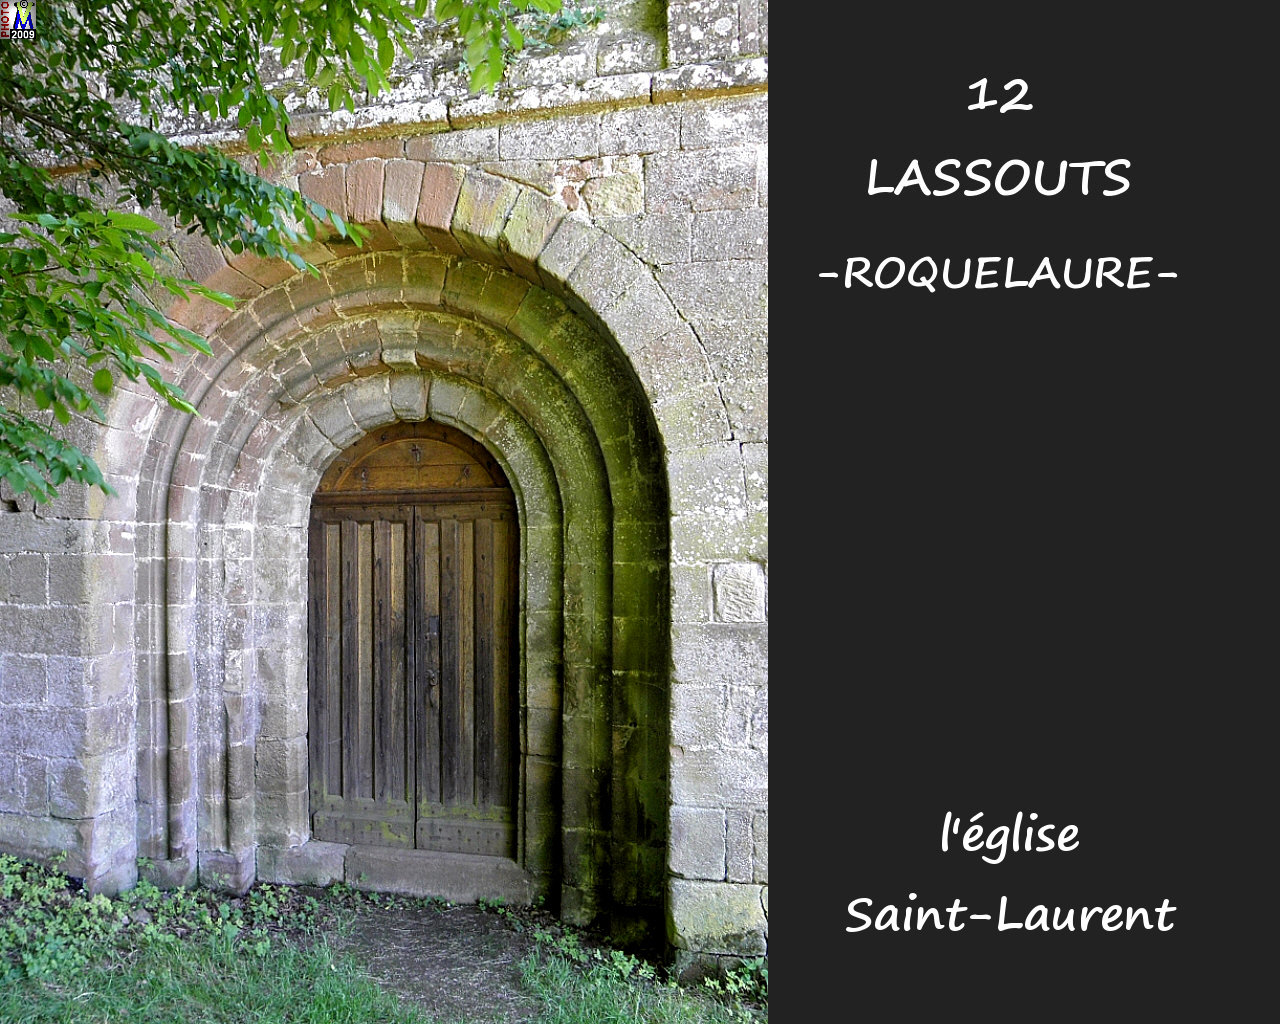 12LASSOUTS-ROQUE_chapelle_110.jpg